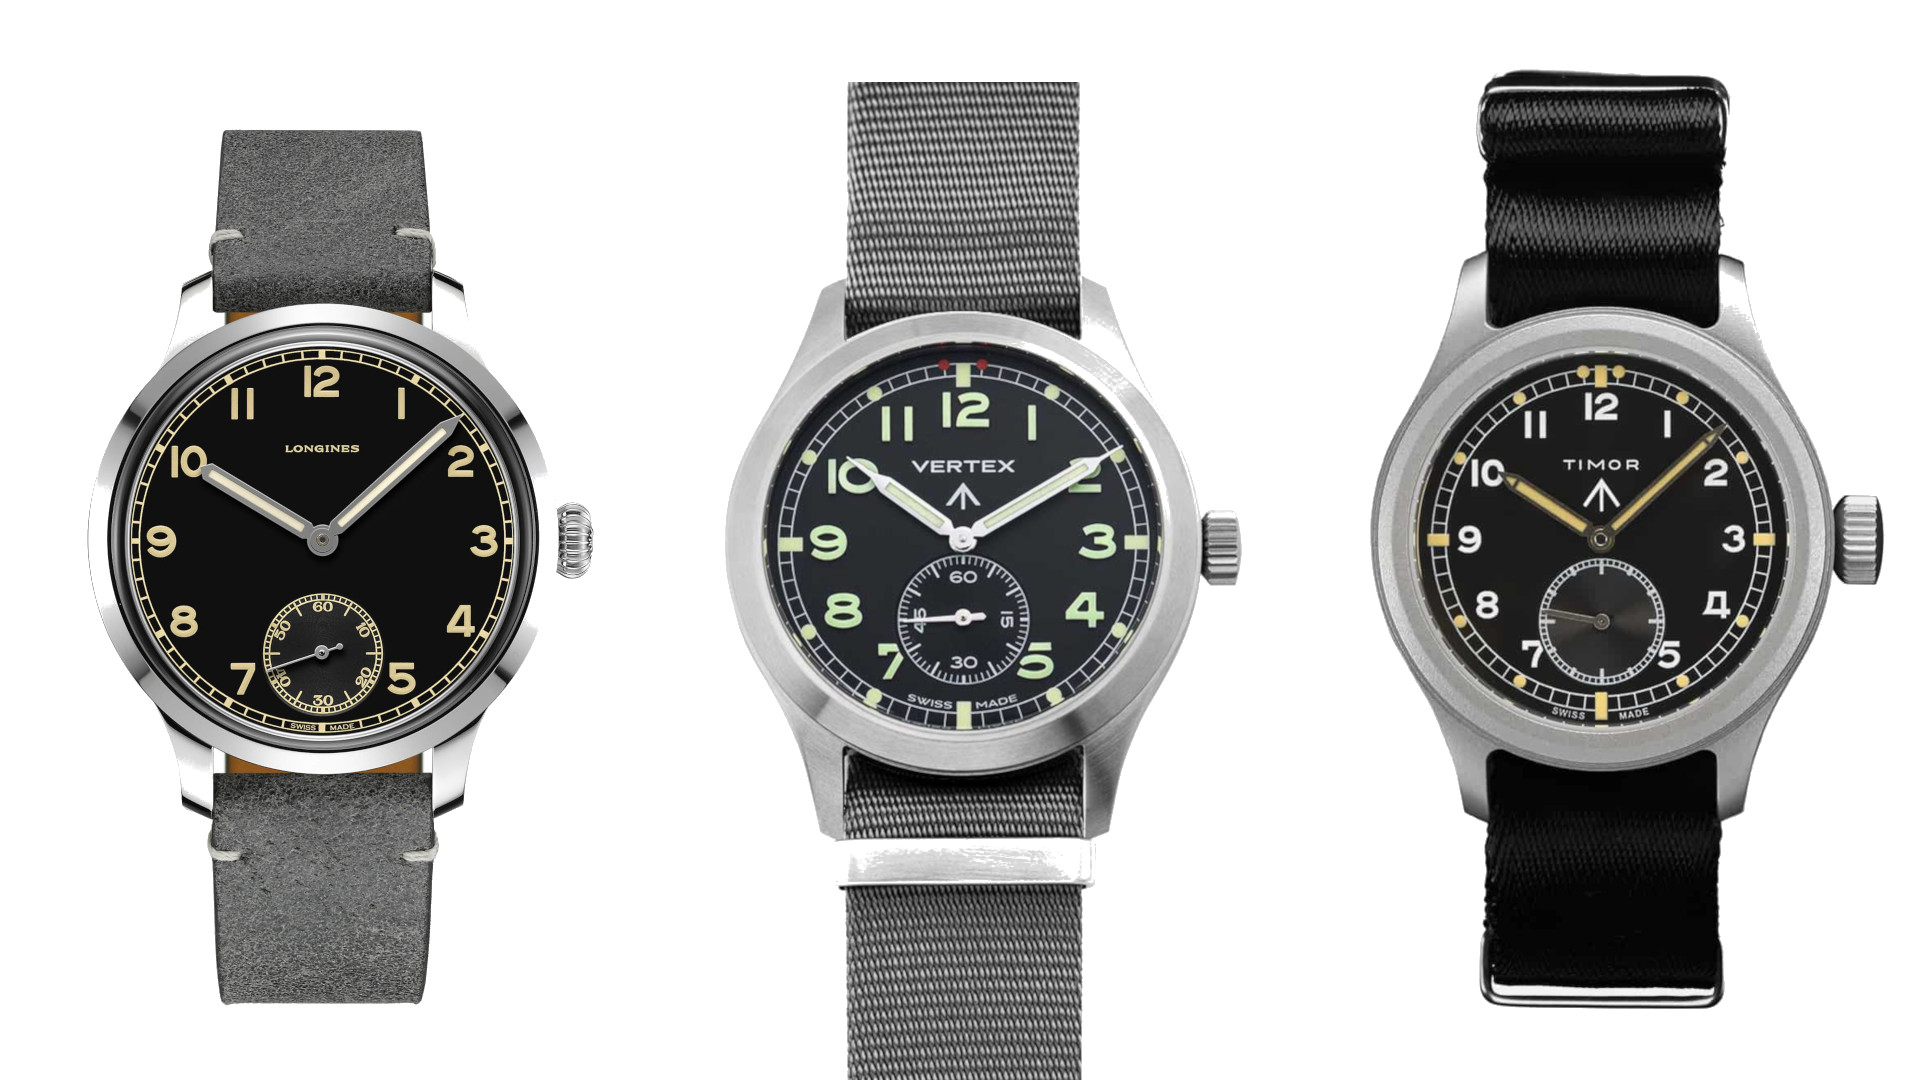 Three vintage-inspired military watches come with immense historical significance